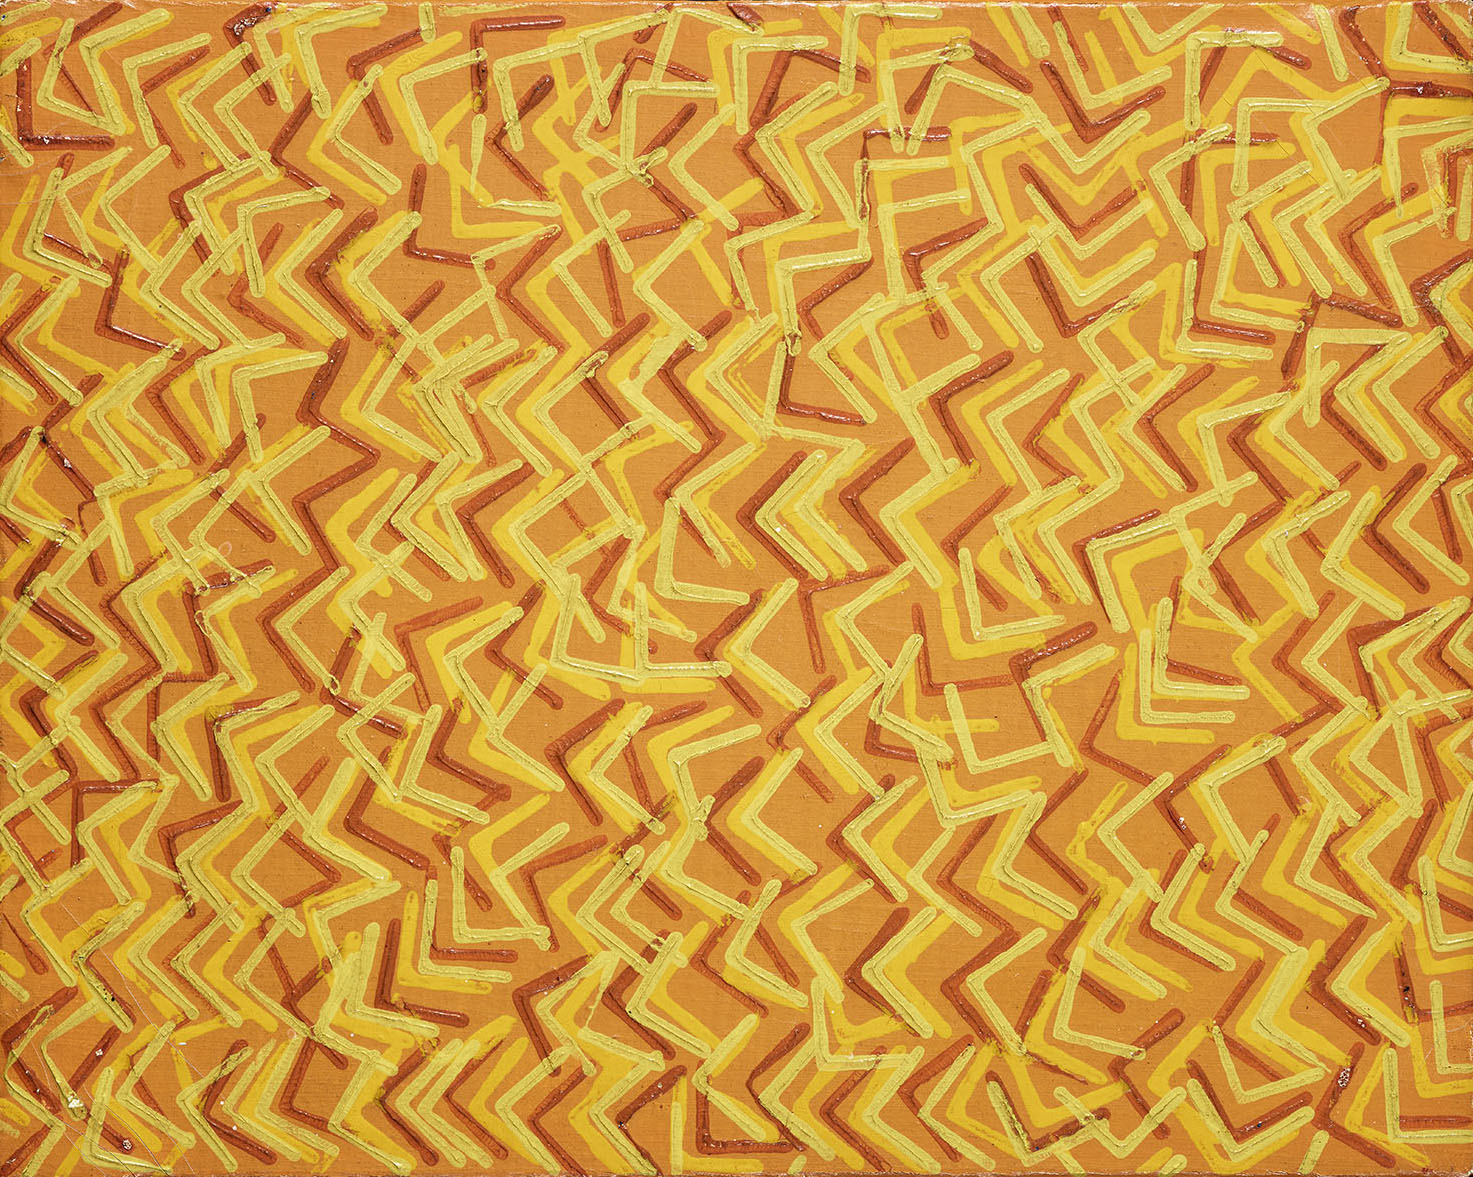 Kinetic composition, 1975, oil on canvas, cm 20 x 24